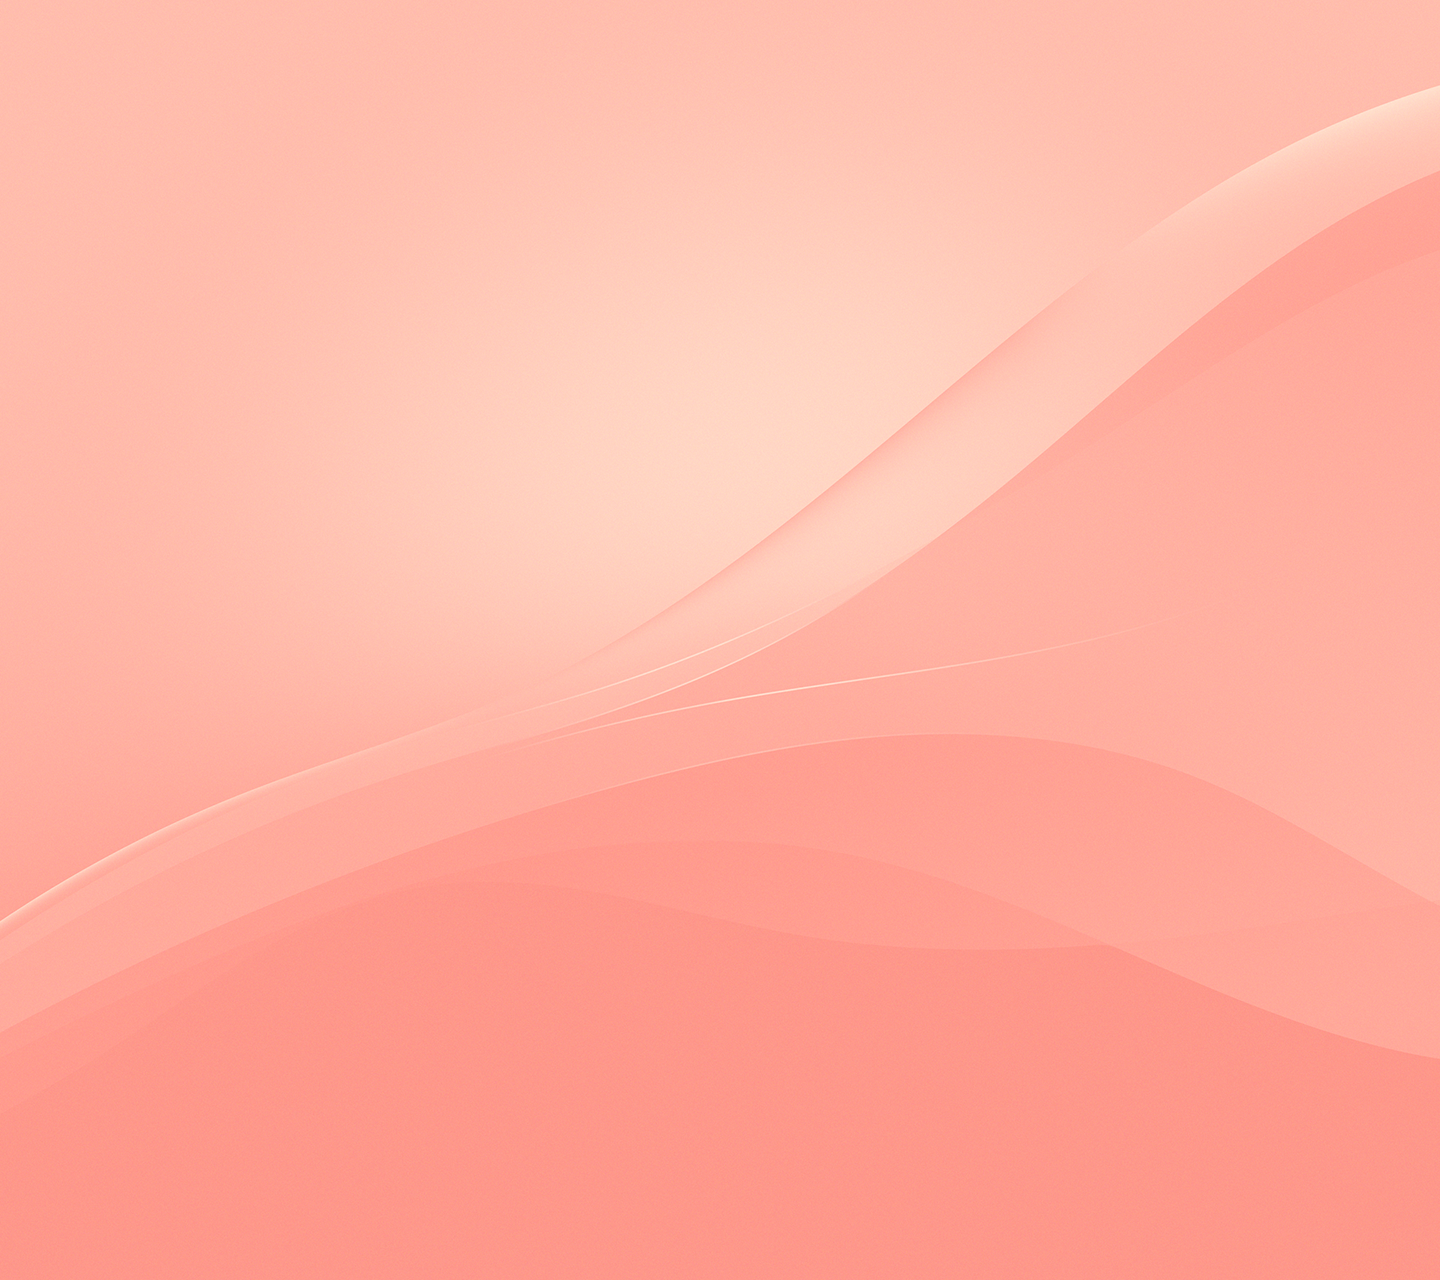 Xperia A Pink Wallpaper